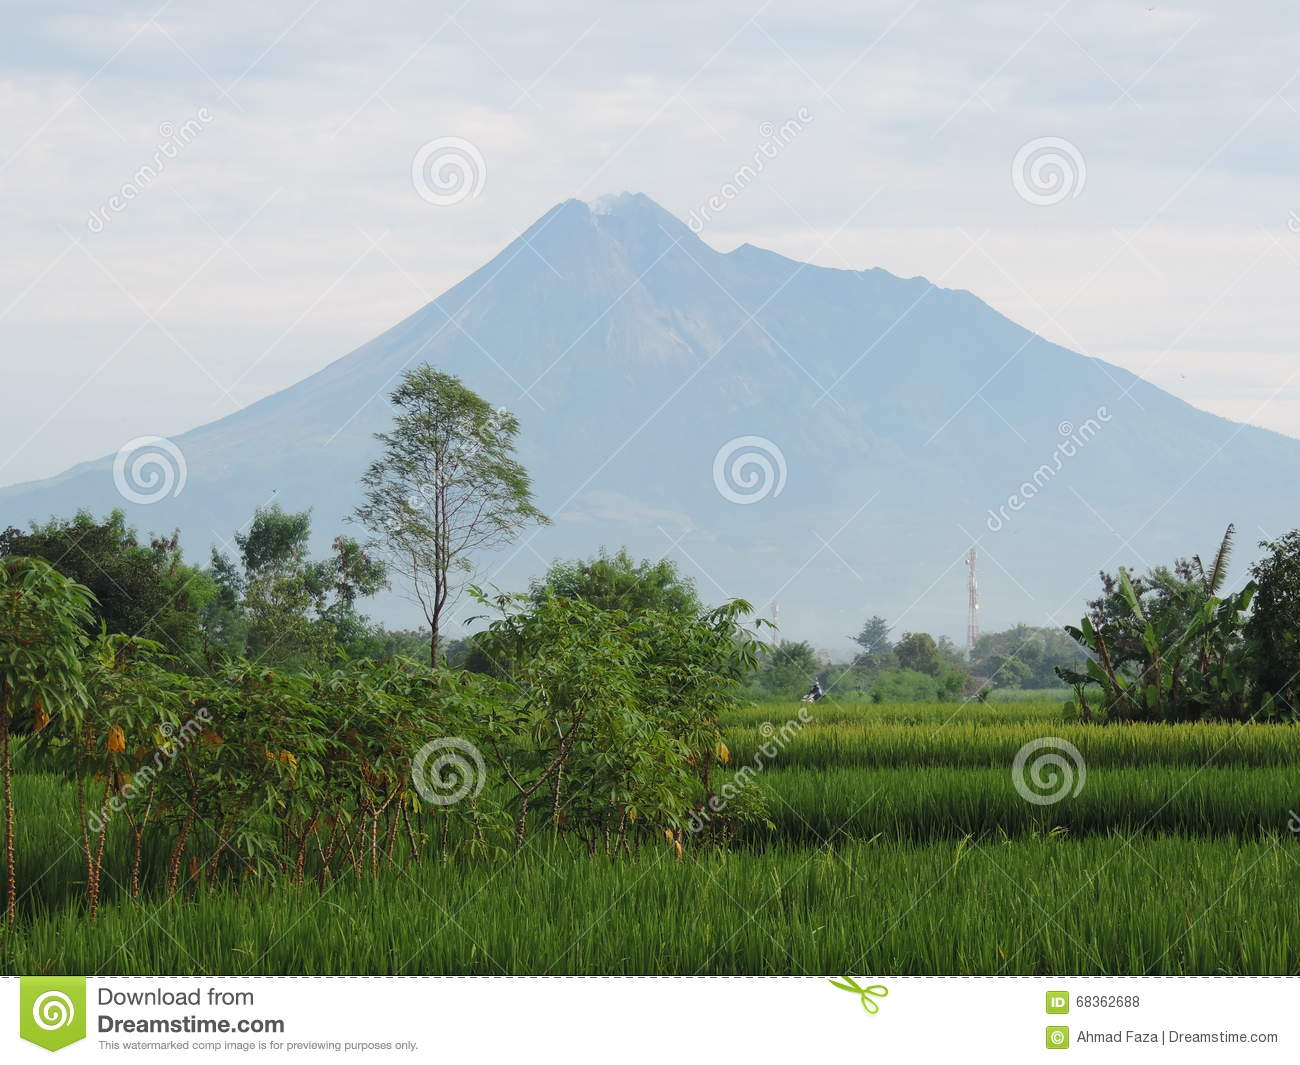 Mount Merapi Indonesia 9 March 2016 Stock Photo.